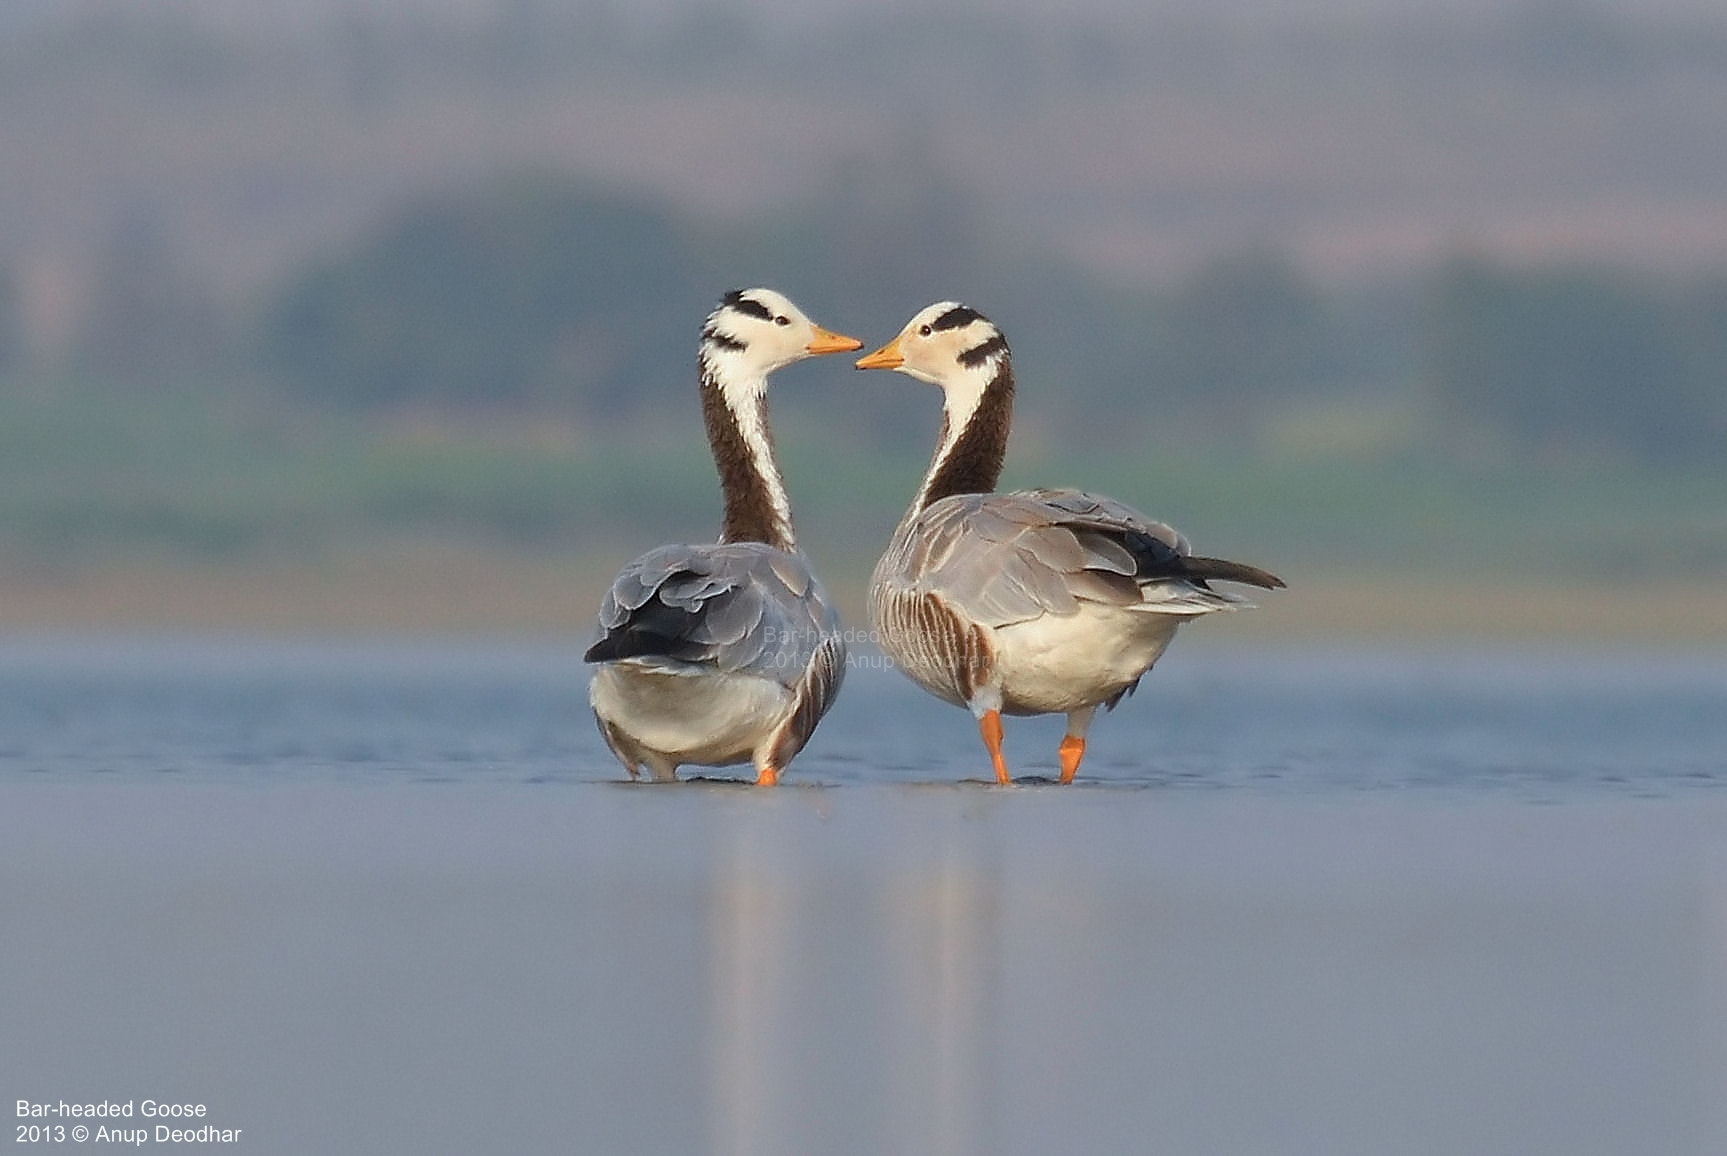 Photograph Bar-headed Goose by Anup Deodhar on 500px